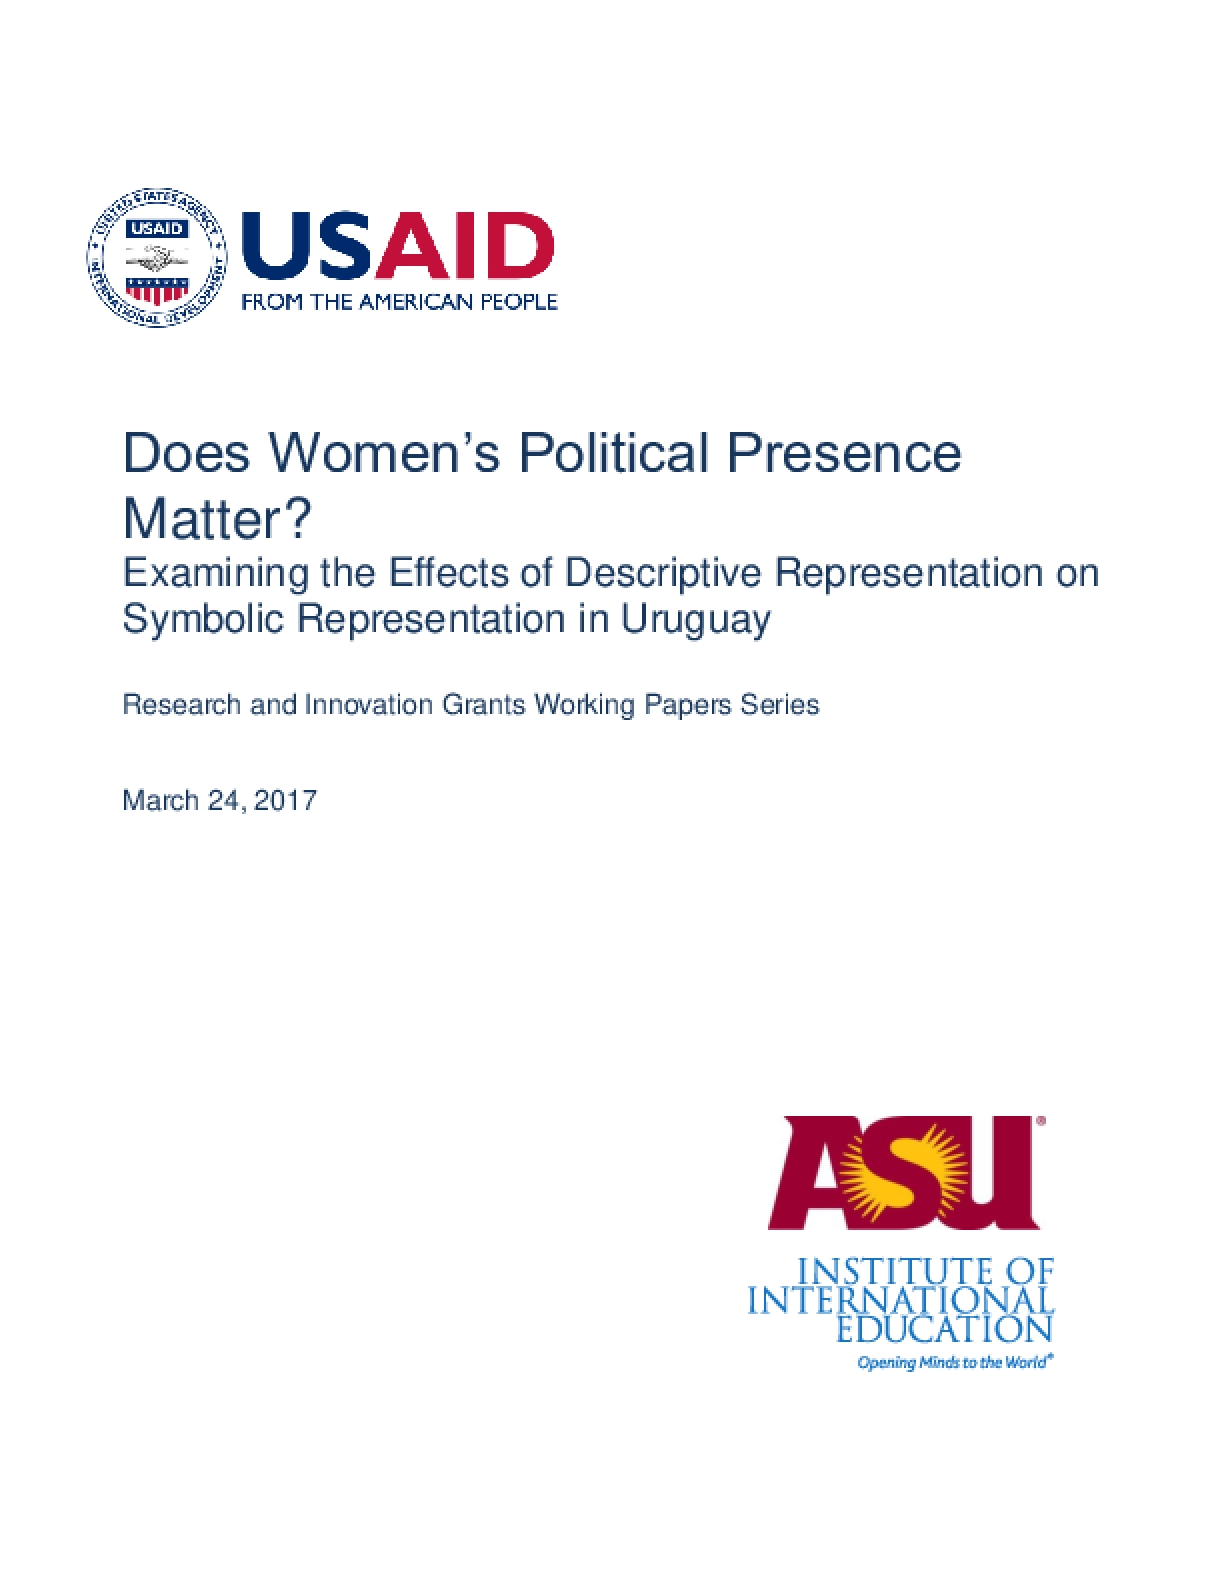 Does Women's Political Presence Matter? Examining the Effects of Descriptive Representation on Symbolic Representation in Uruguay